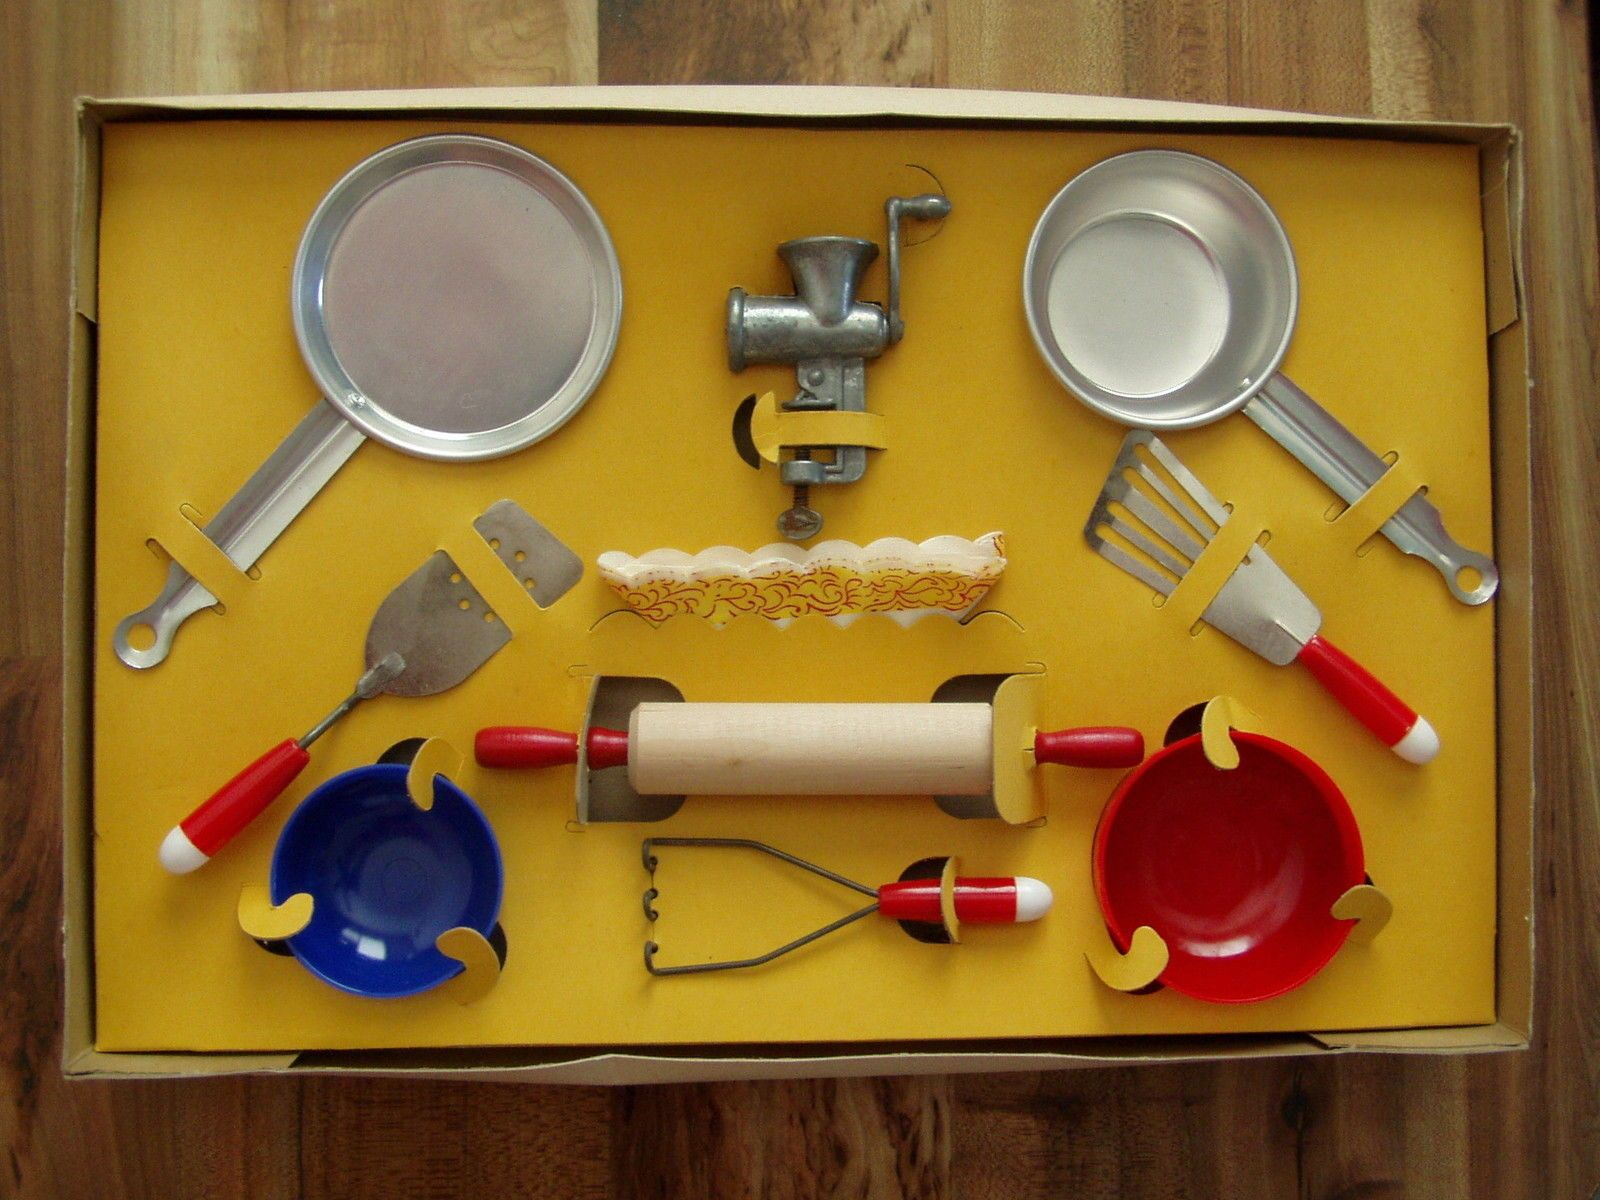 Vintage 1950s Little Homemaker Cooking Set Play Set with